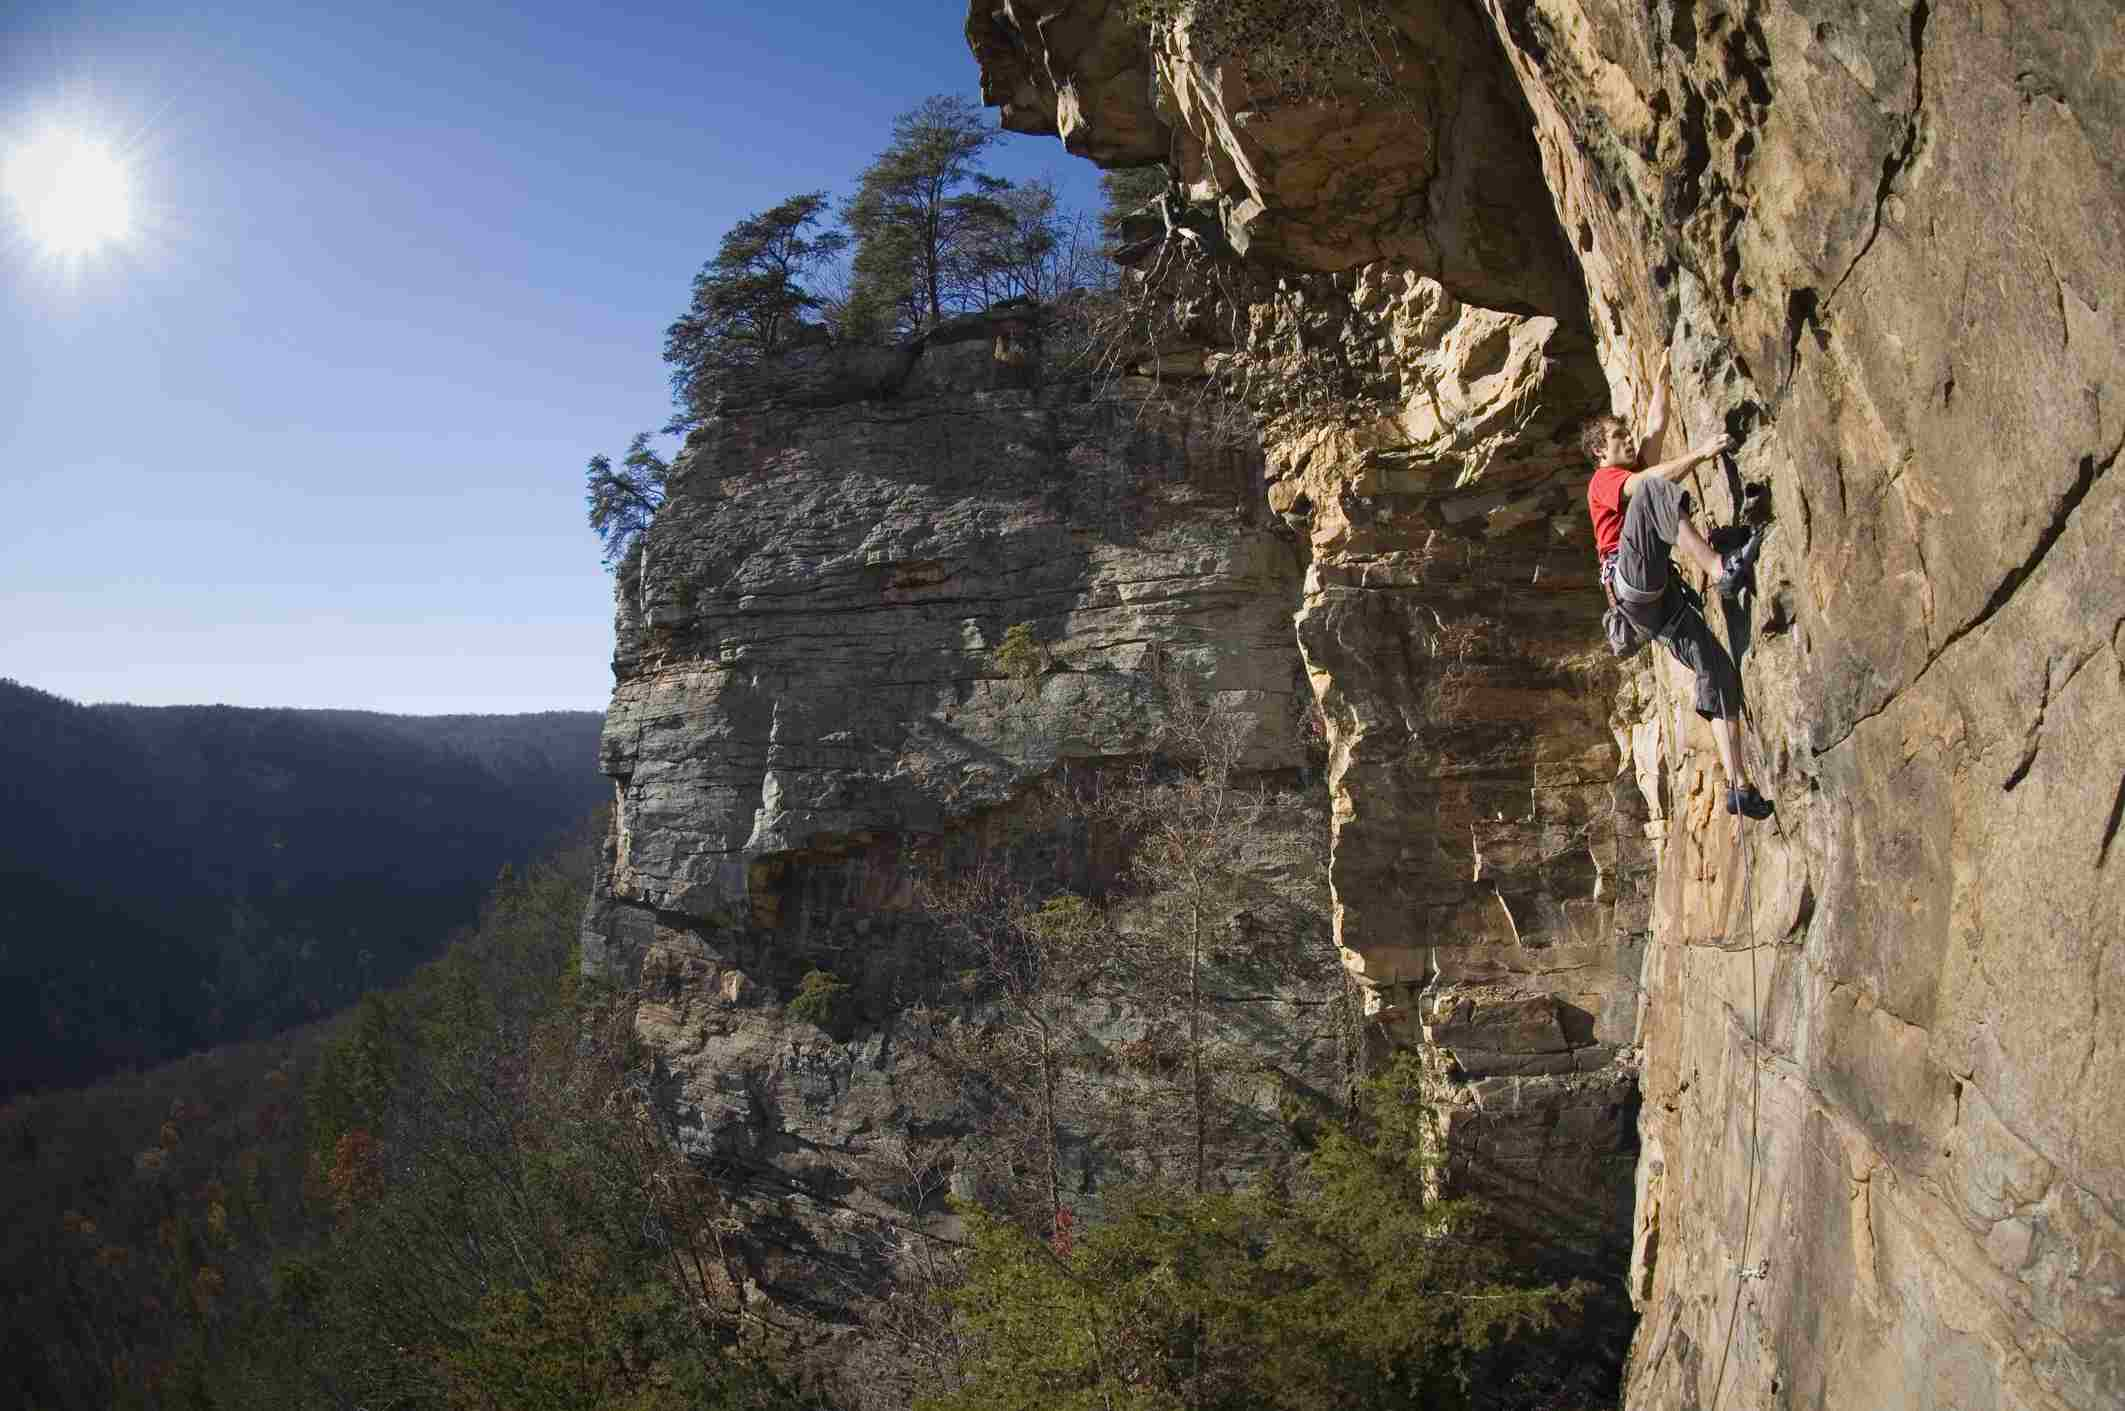 A man climbs a rock face in chattanooga